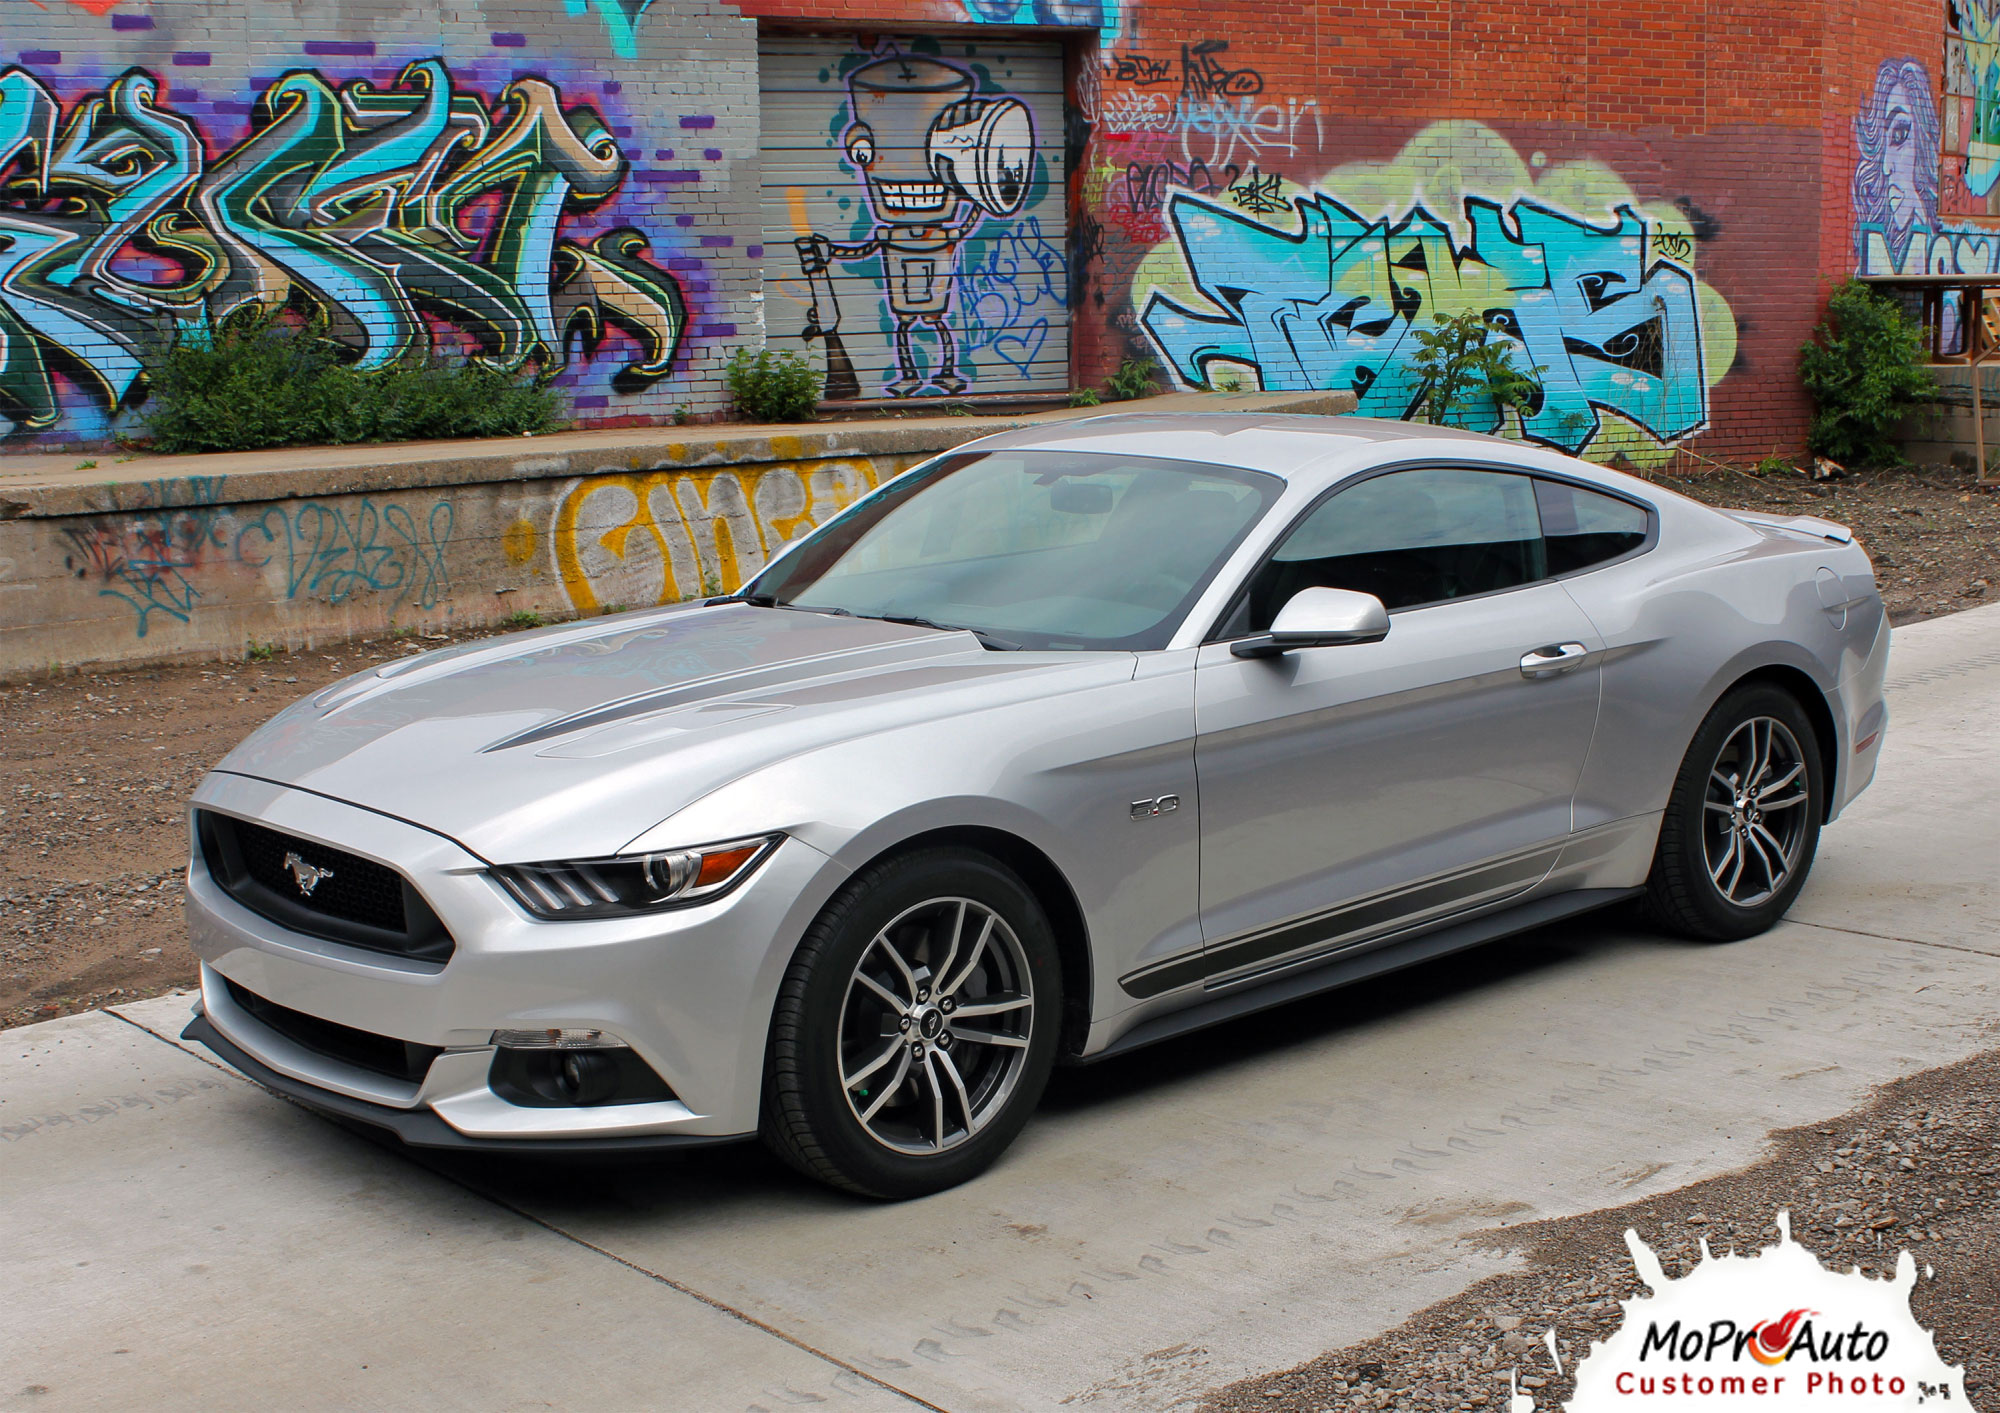 2015 2016 2017 Ford Mustang Fade Rally Faded Racing Stripes Ebony Racing Striping Silver Vinyl Graphics Decals